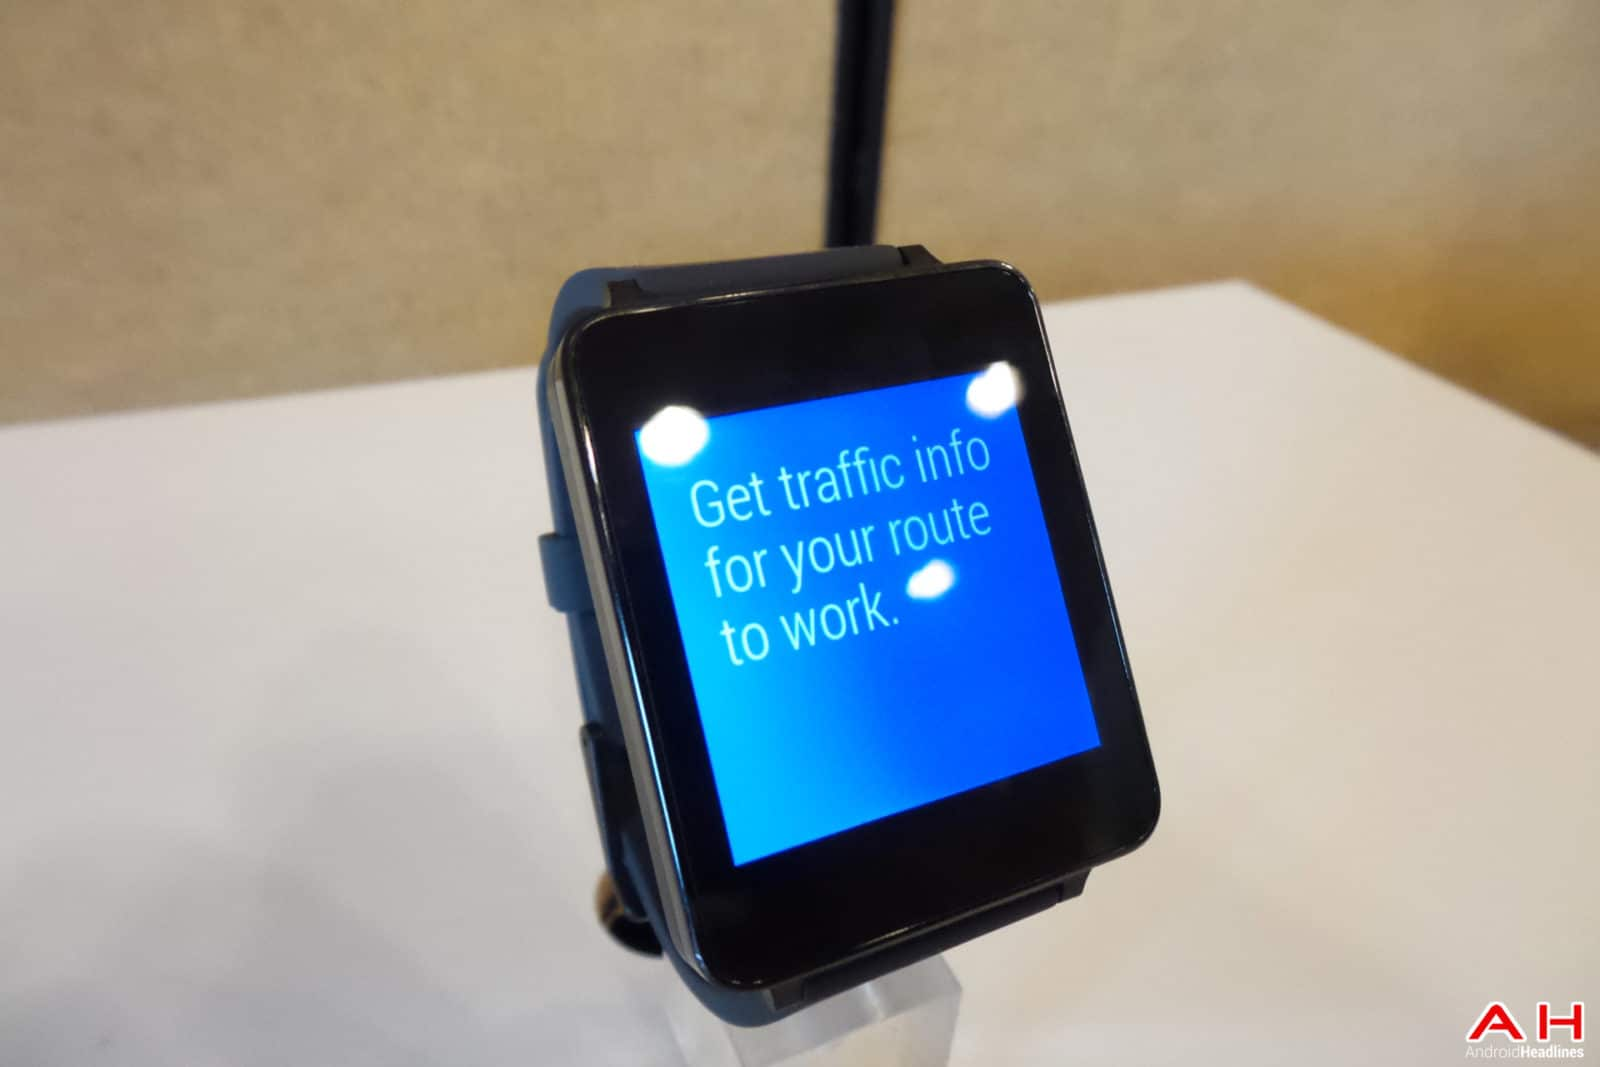 AH Google IO 2014 LG G Watch (10 of 10)